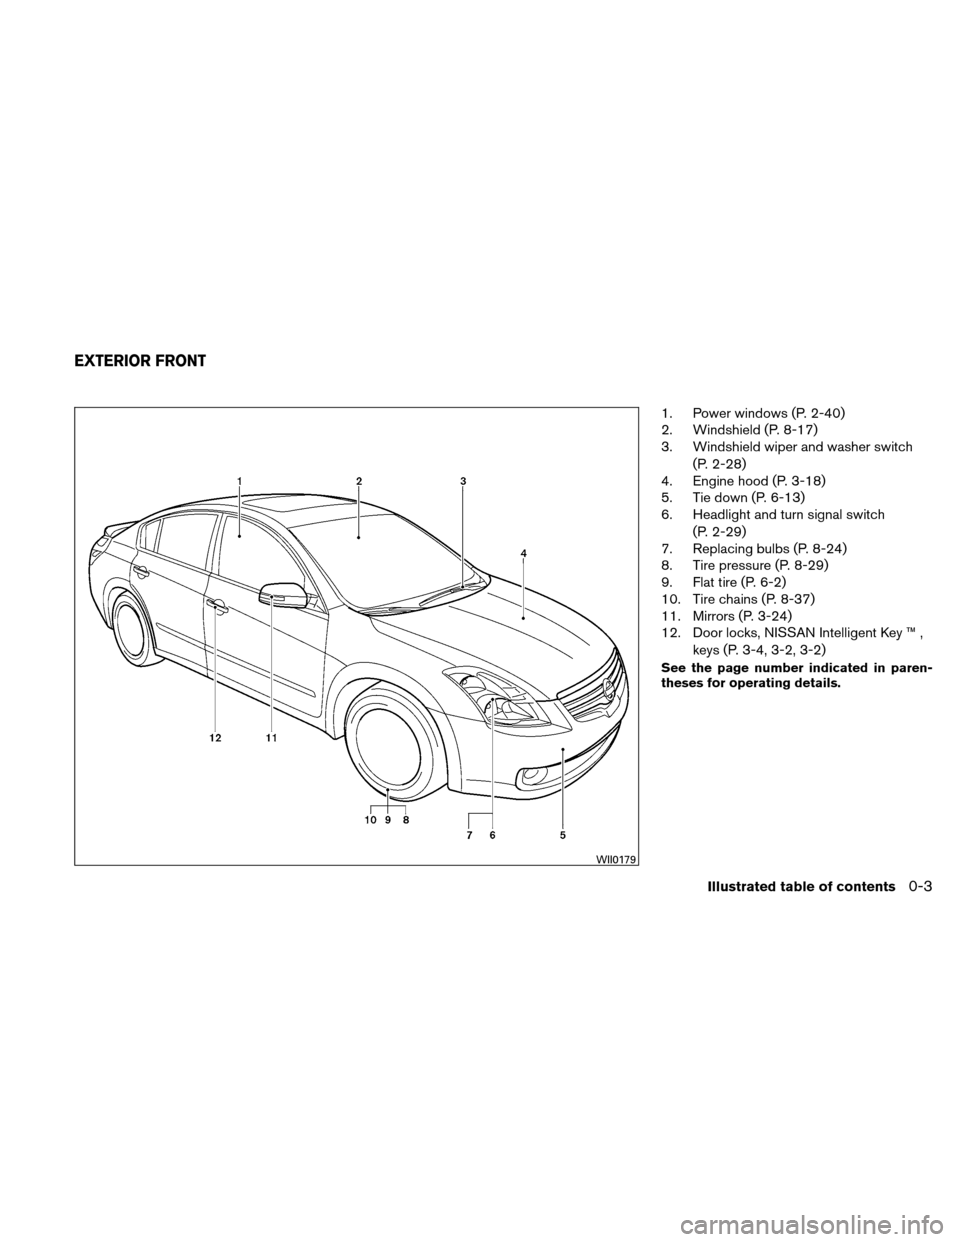 NISSAN ALTIMA HYBRID 2010 L32A / 4.G Owners Manual, Page 22